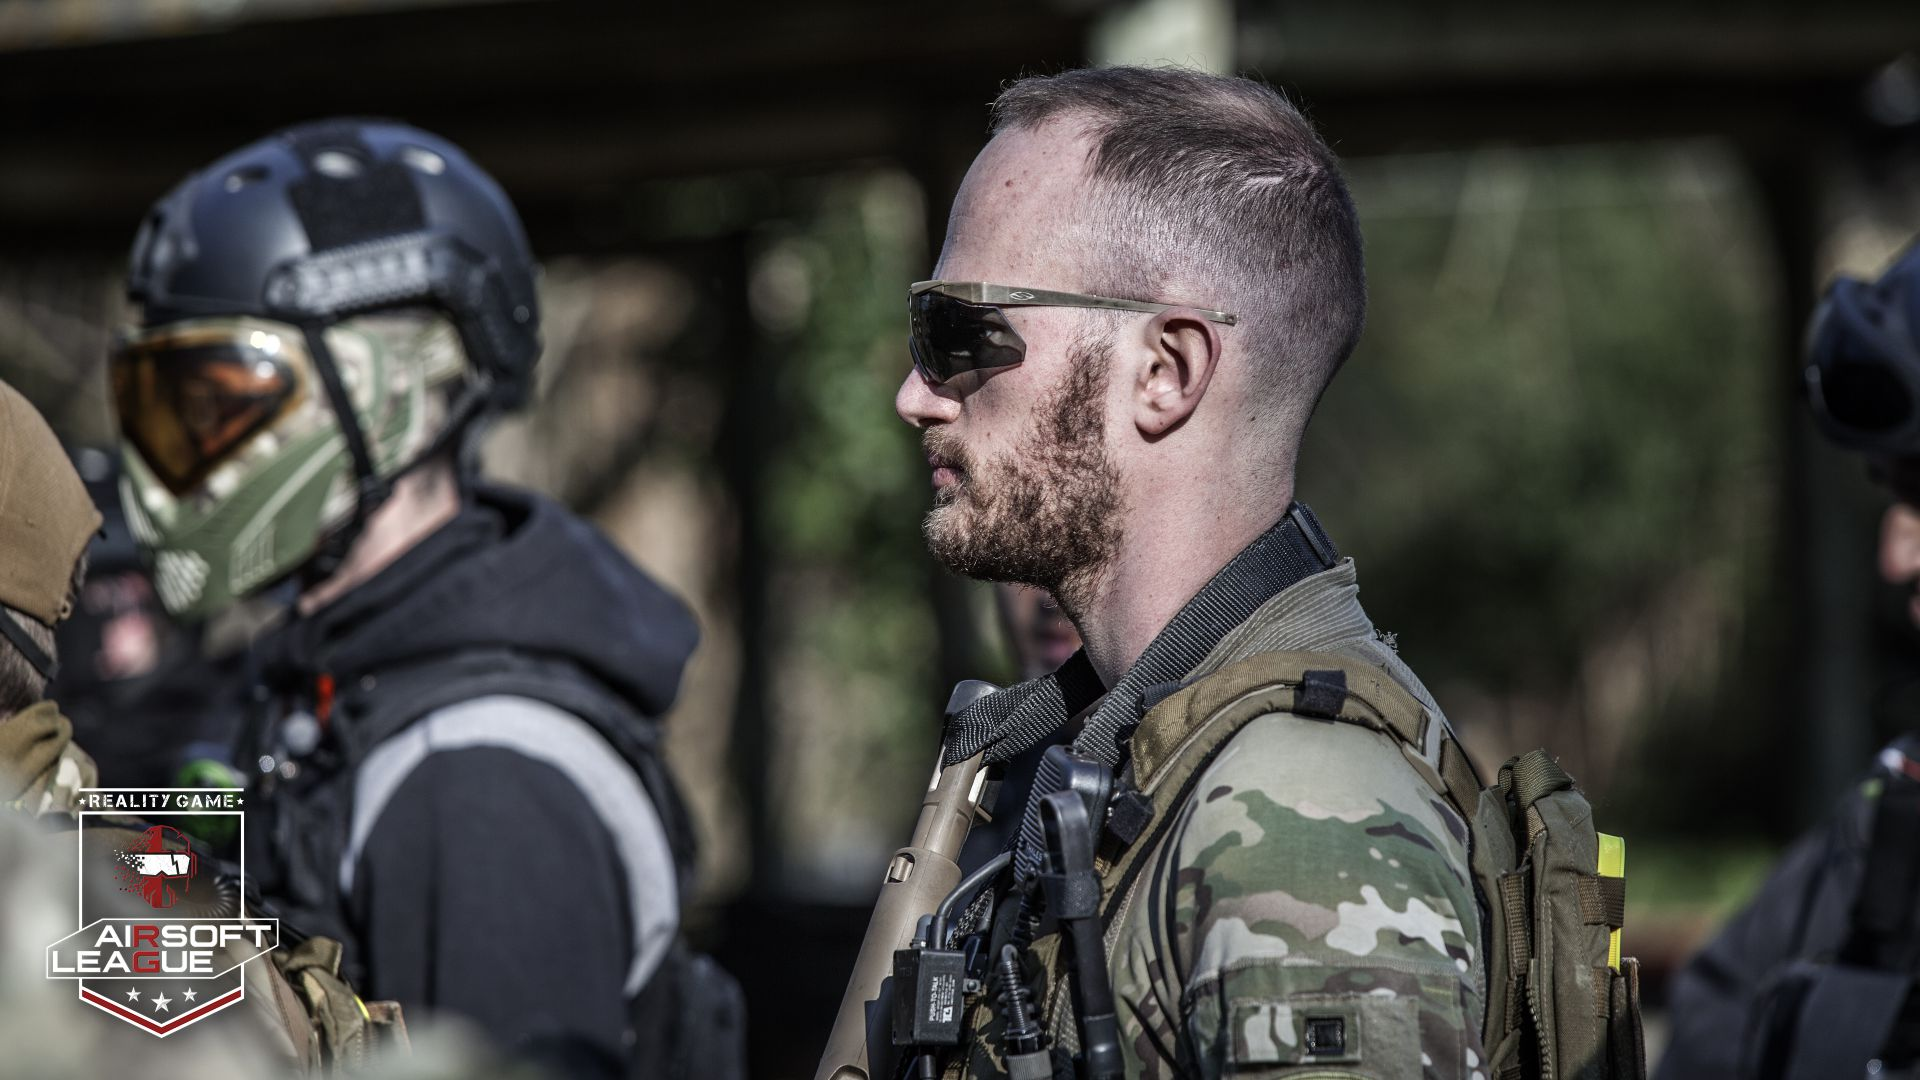 Airsoft - Police militaire